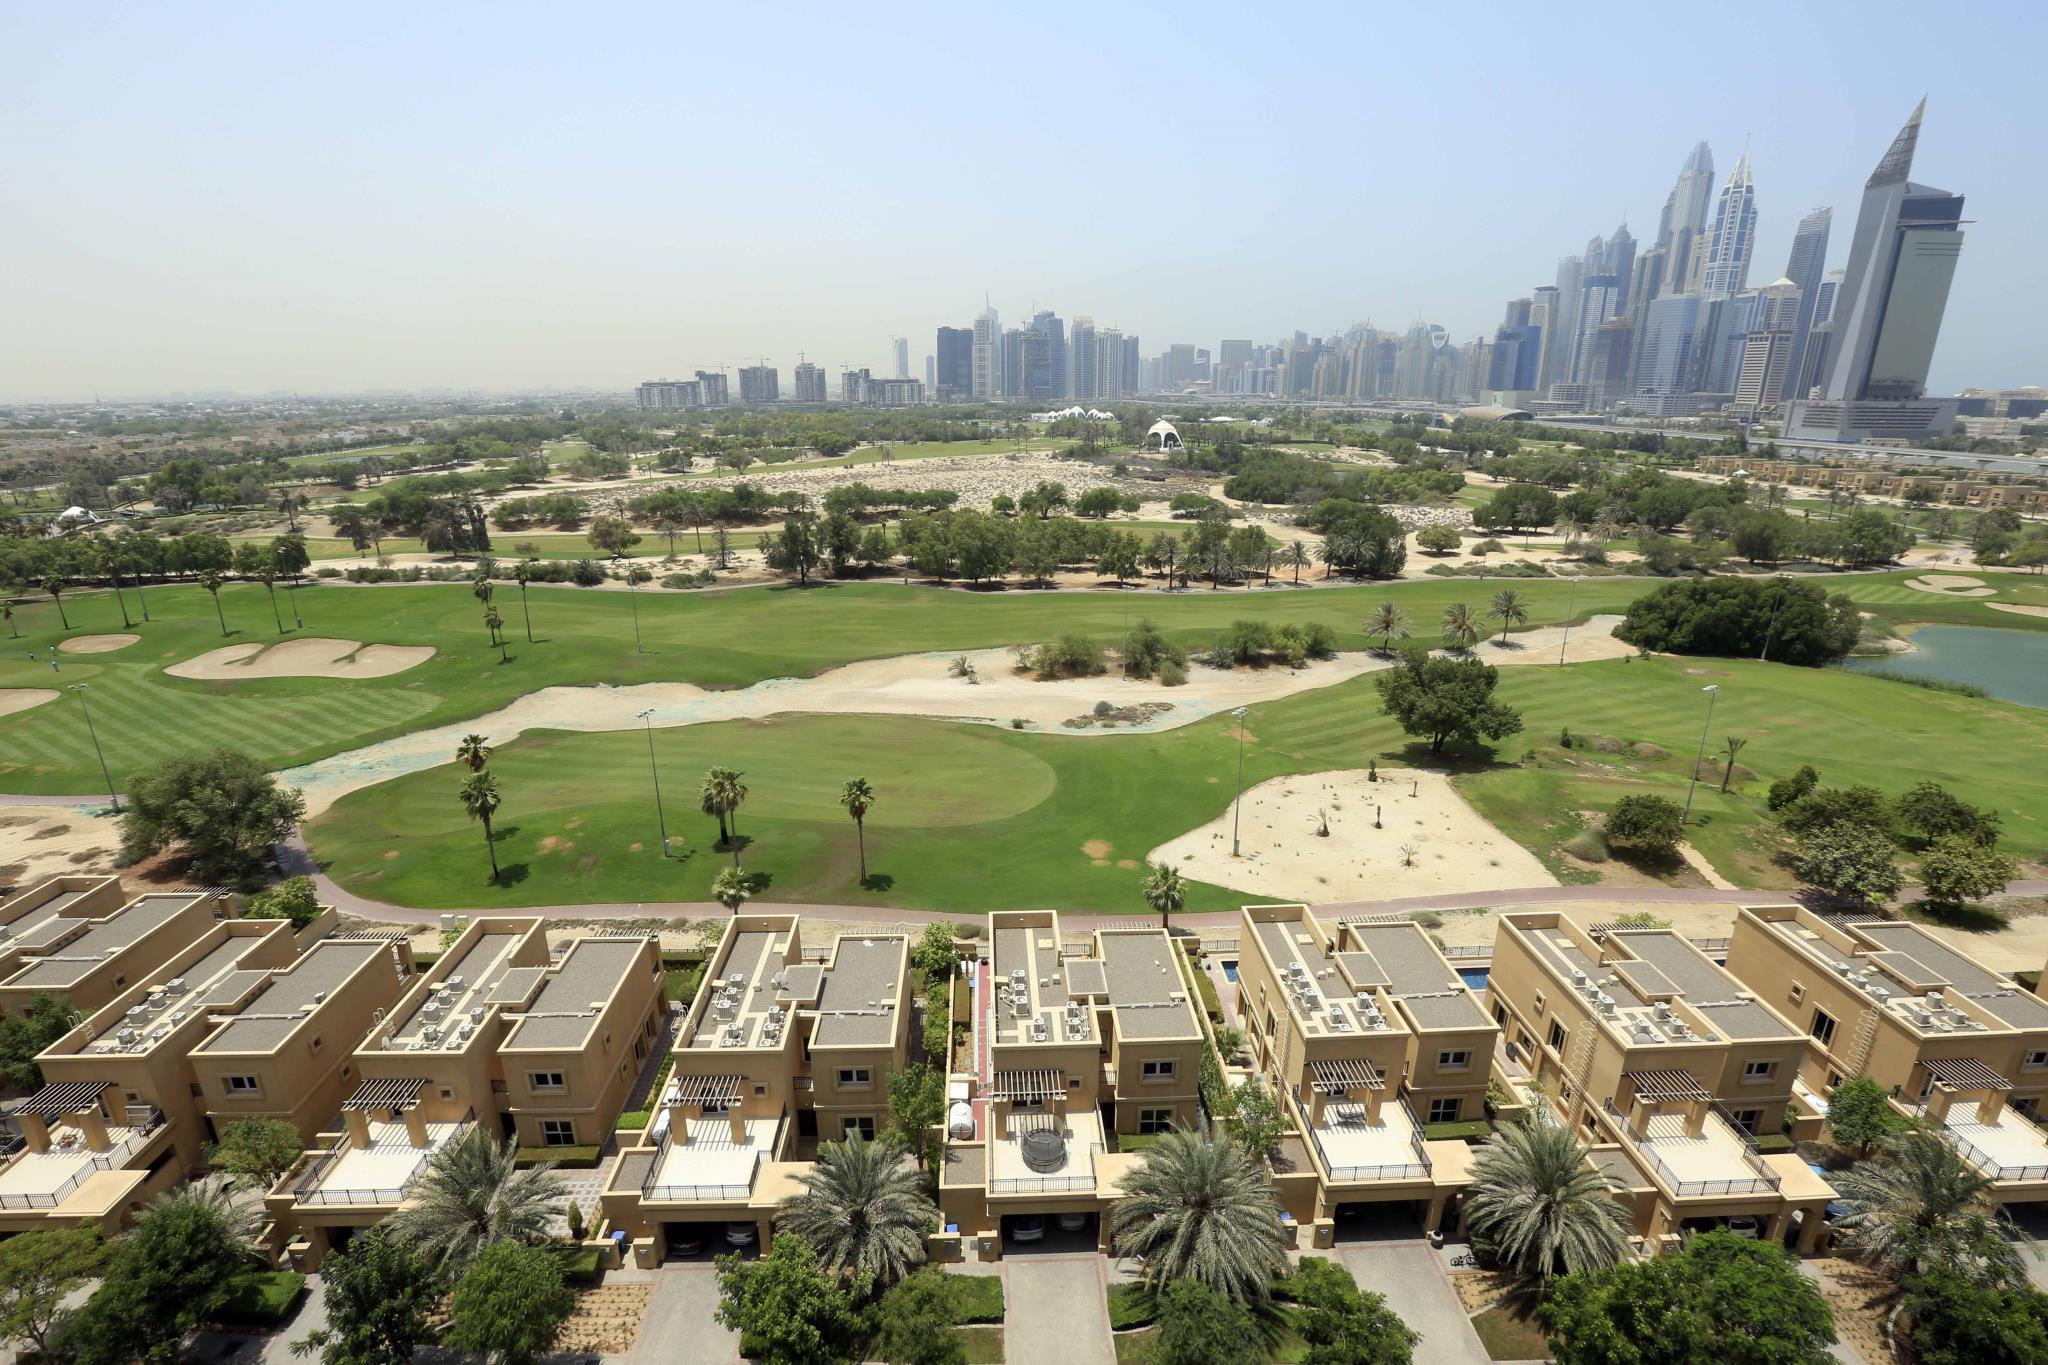 1 Bedroom Apt With Full Golf Course View In Views